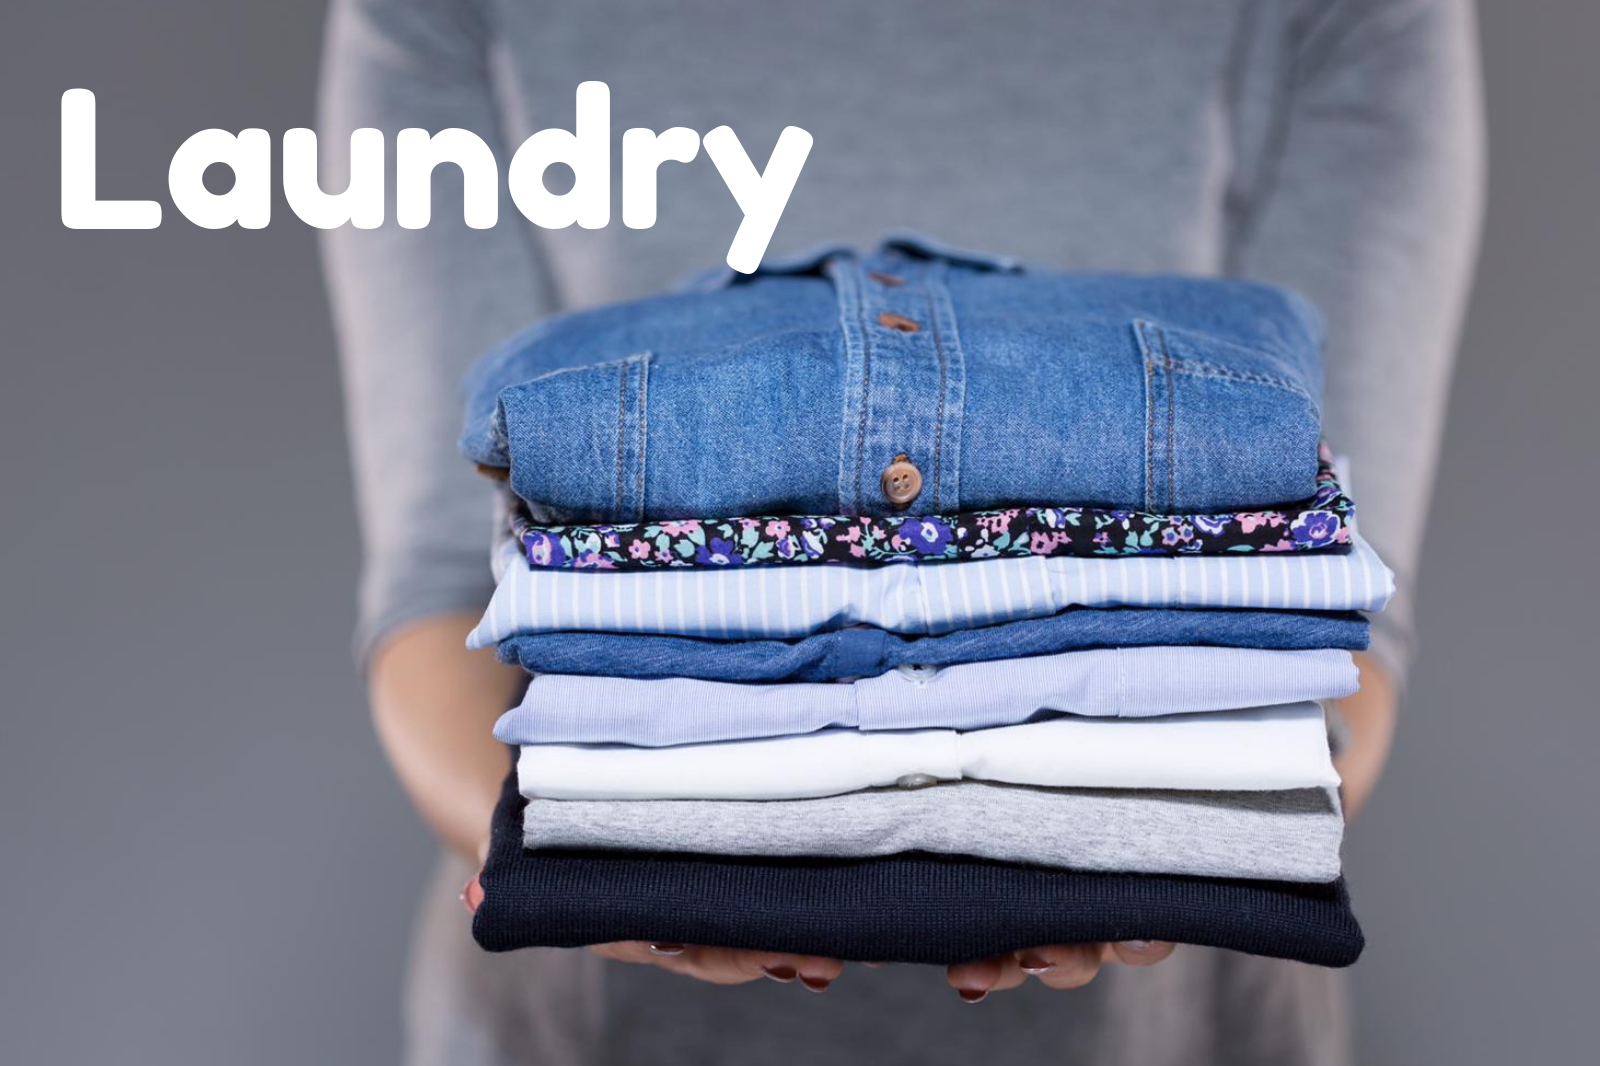 laundry and dry cleaning service london